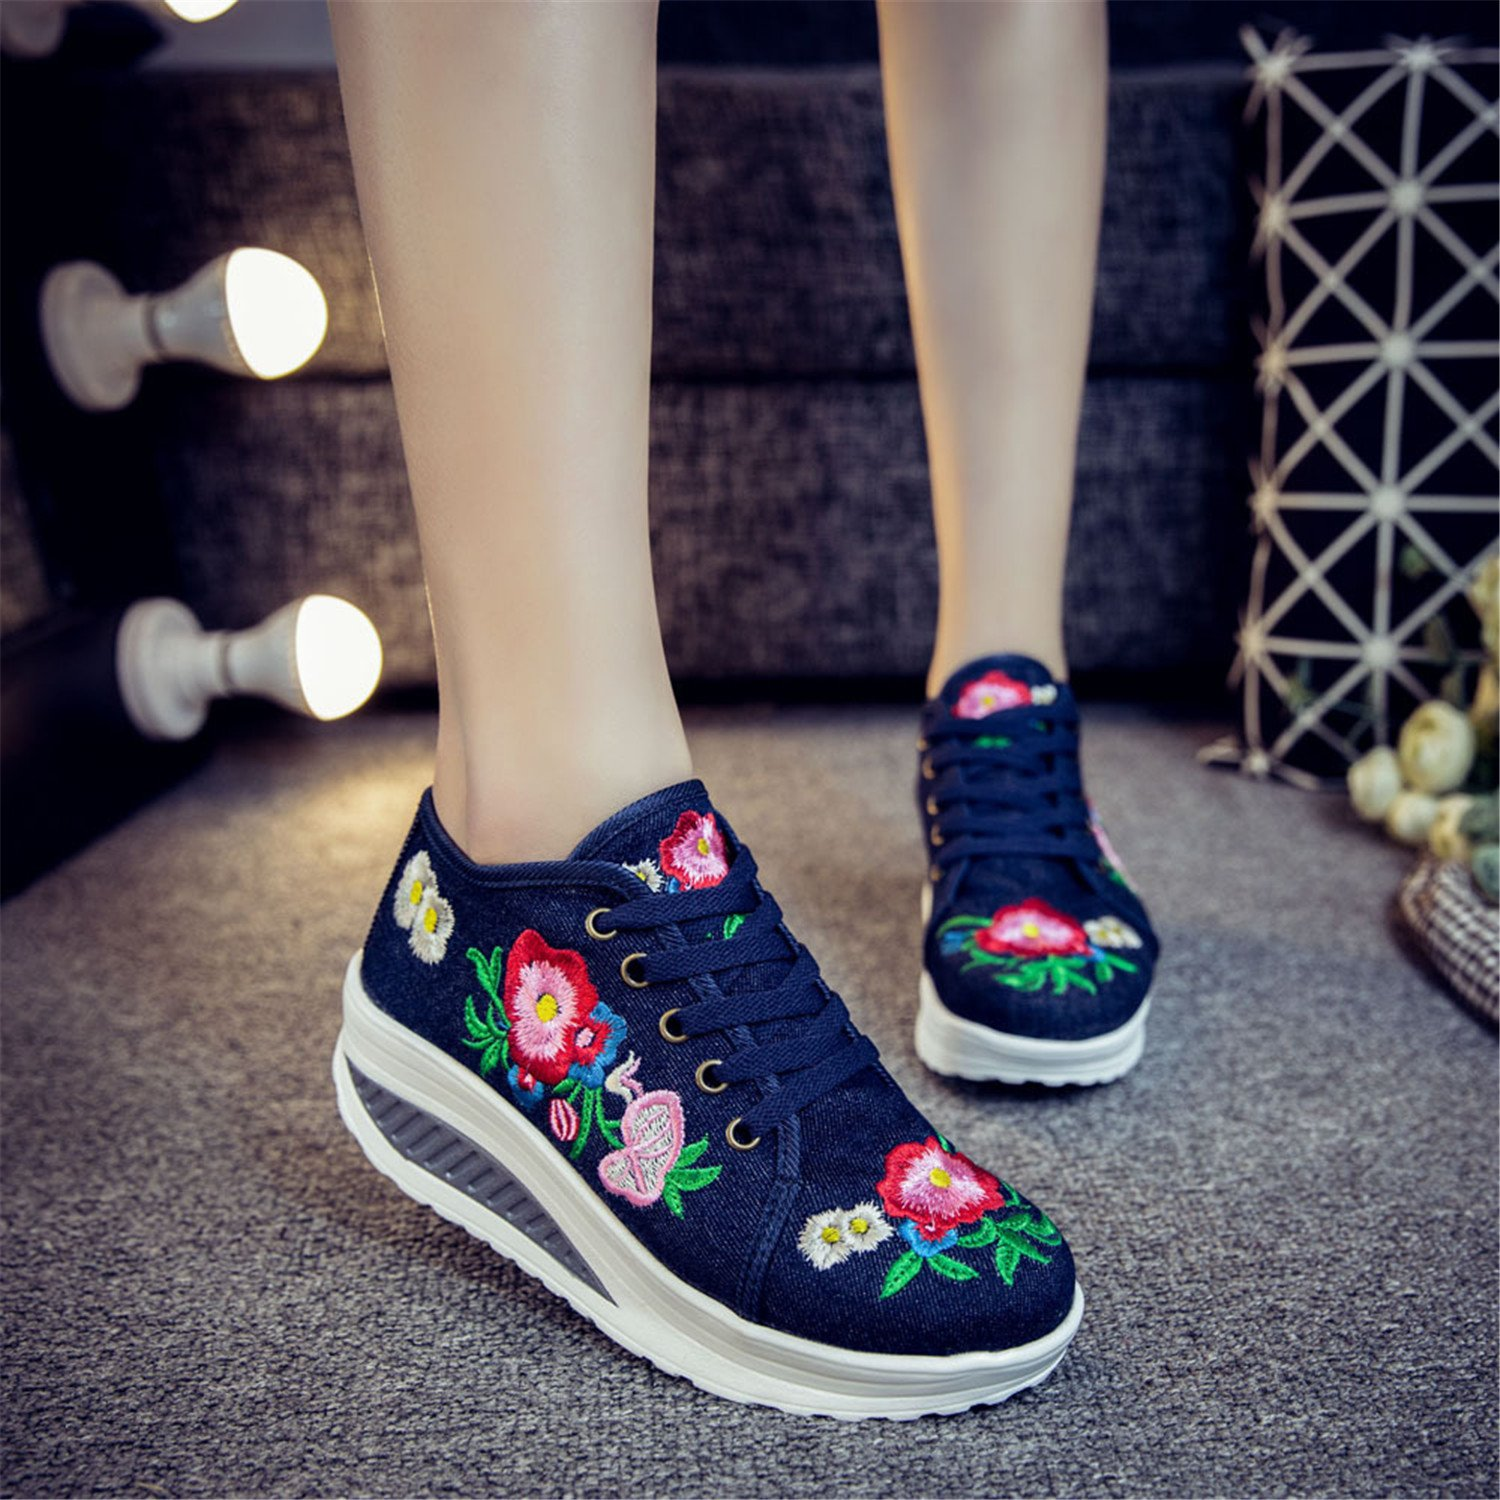 Qhome Womens Peony Embroidery Comfortable Casual Walking Canvas Lace-up Elevator Round-Toe Rocking Shoes